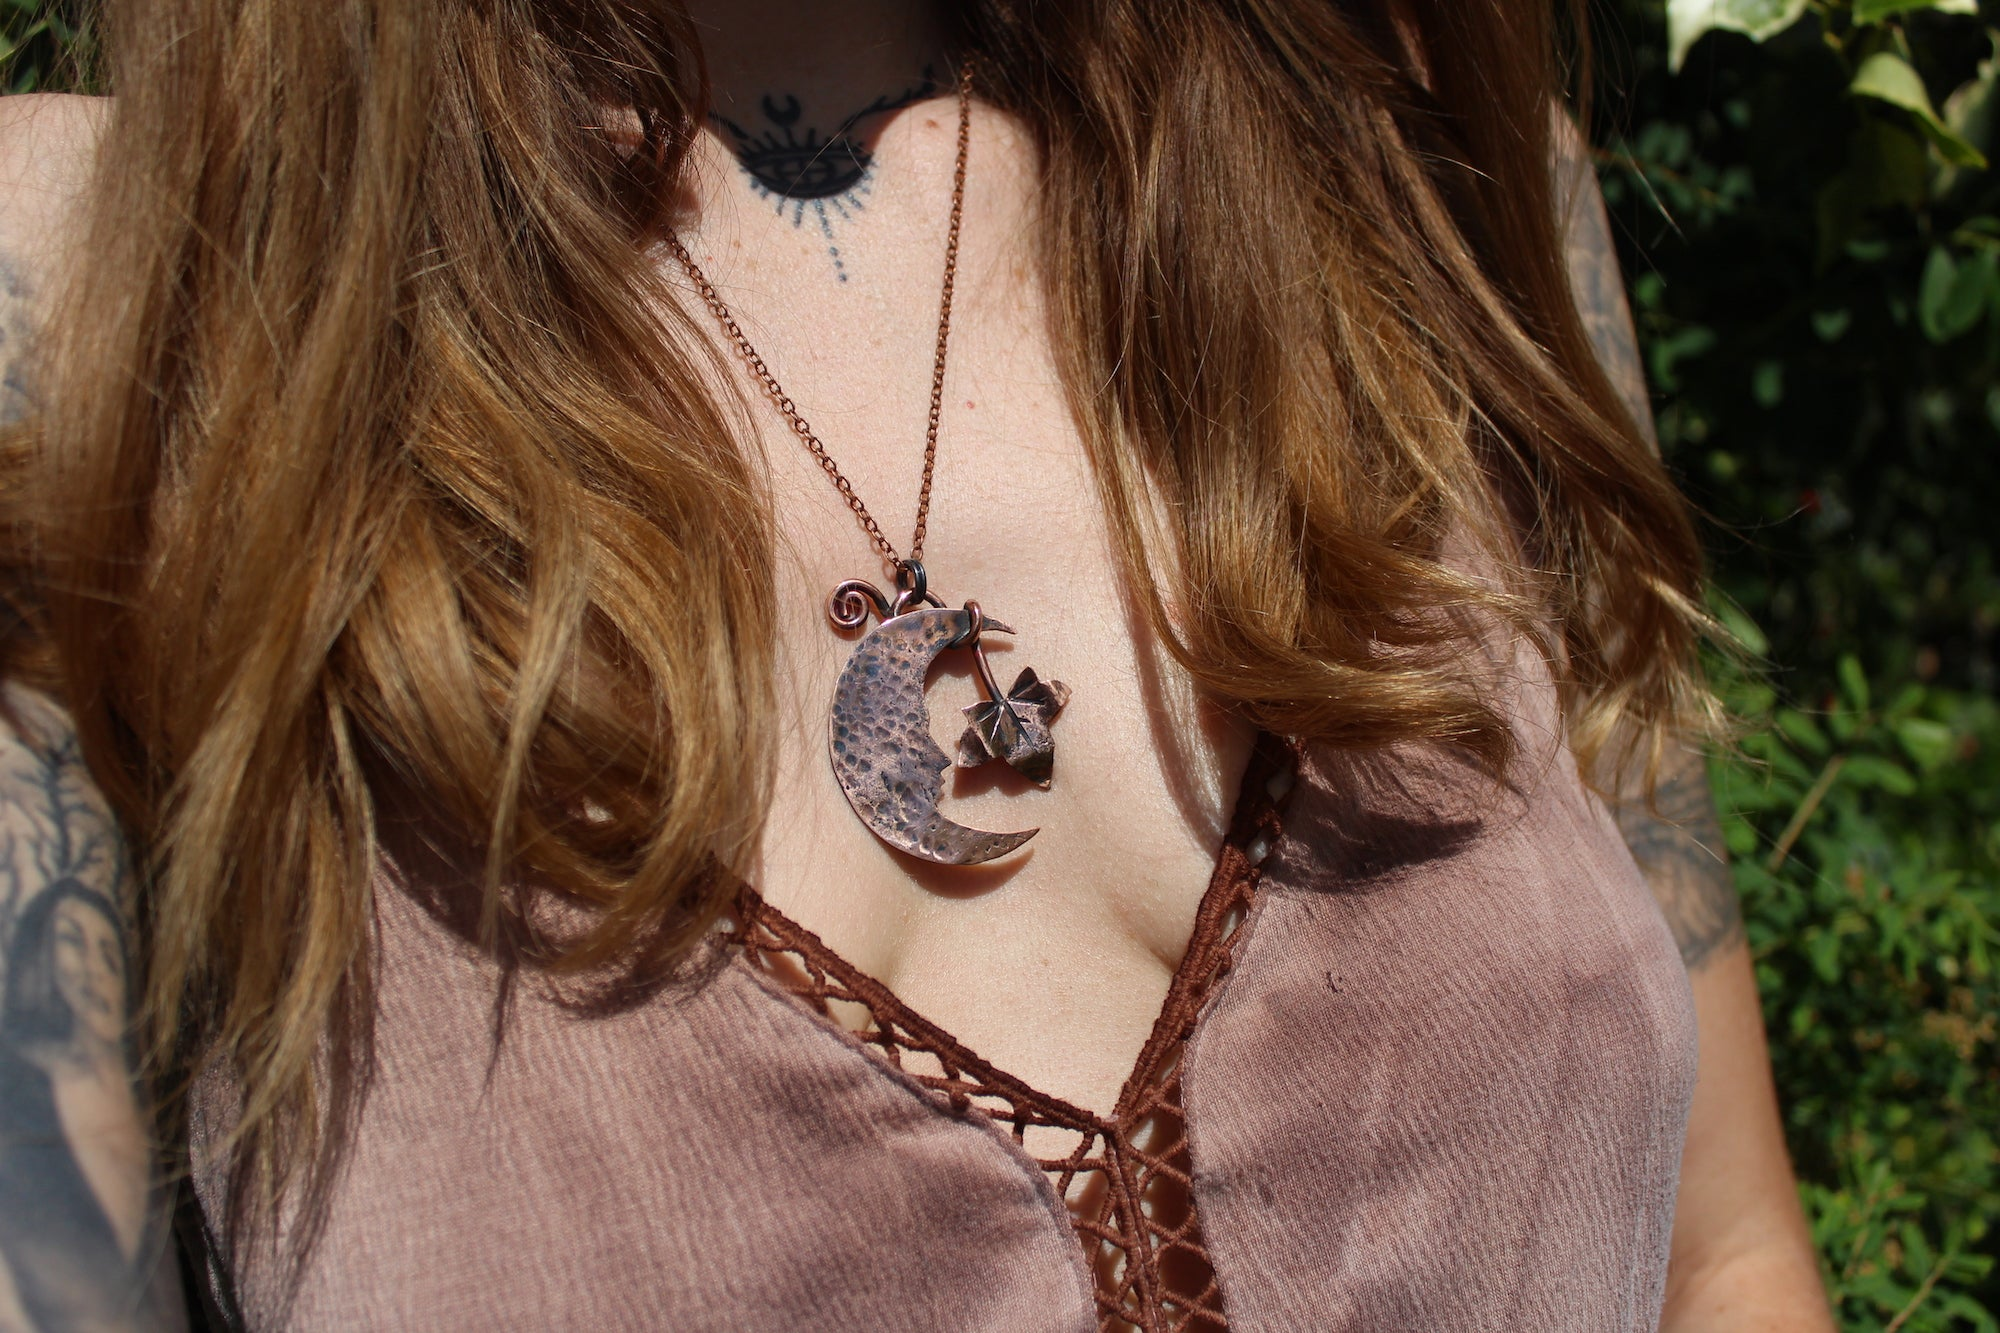 IVY MOON Handmade Copper Necklace